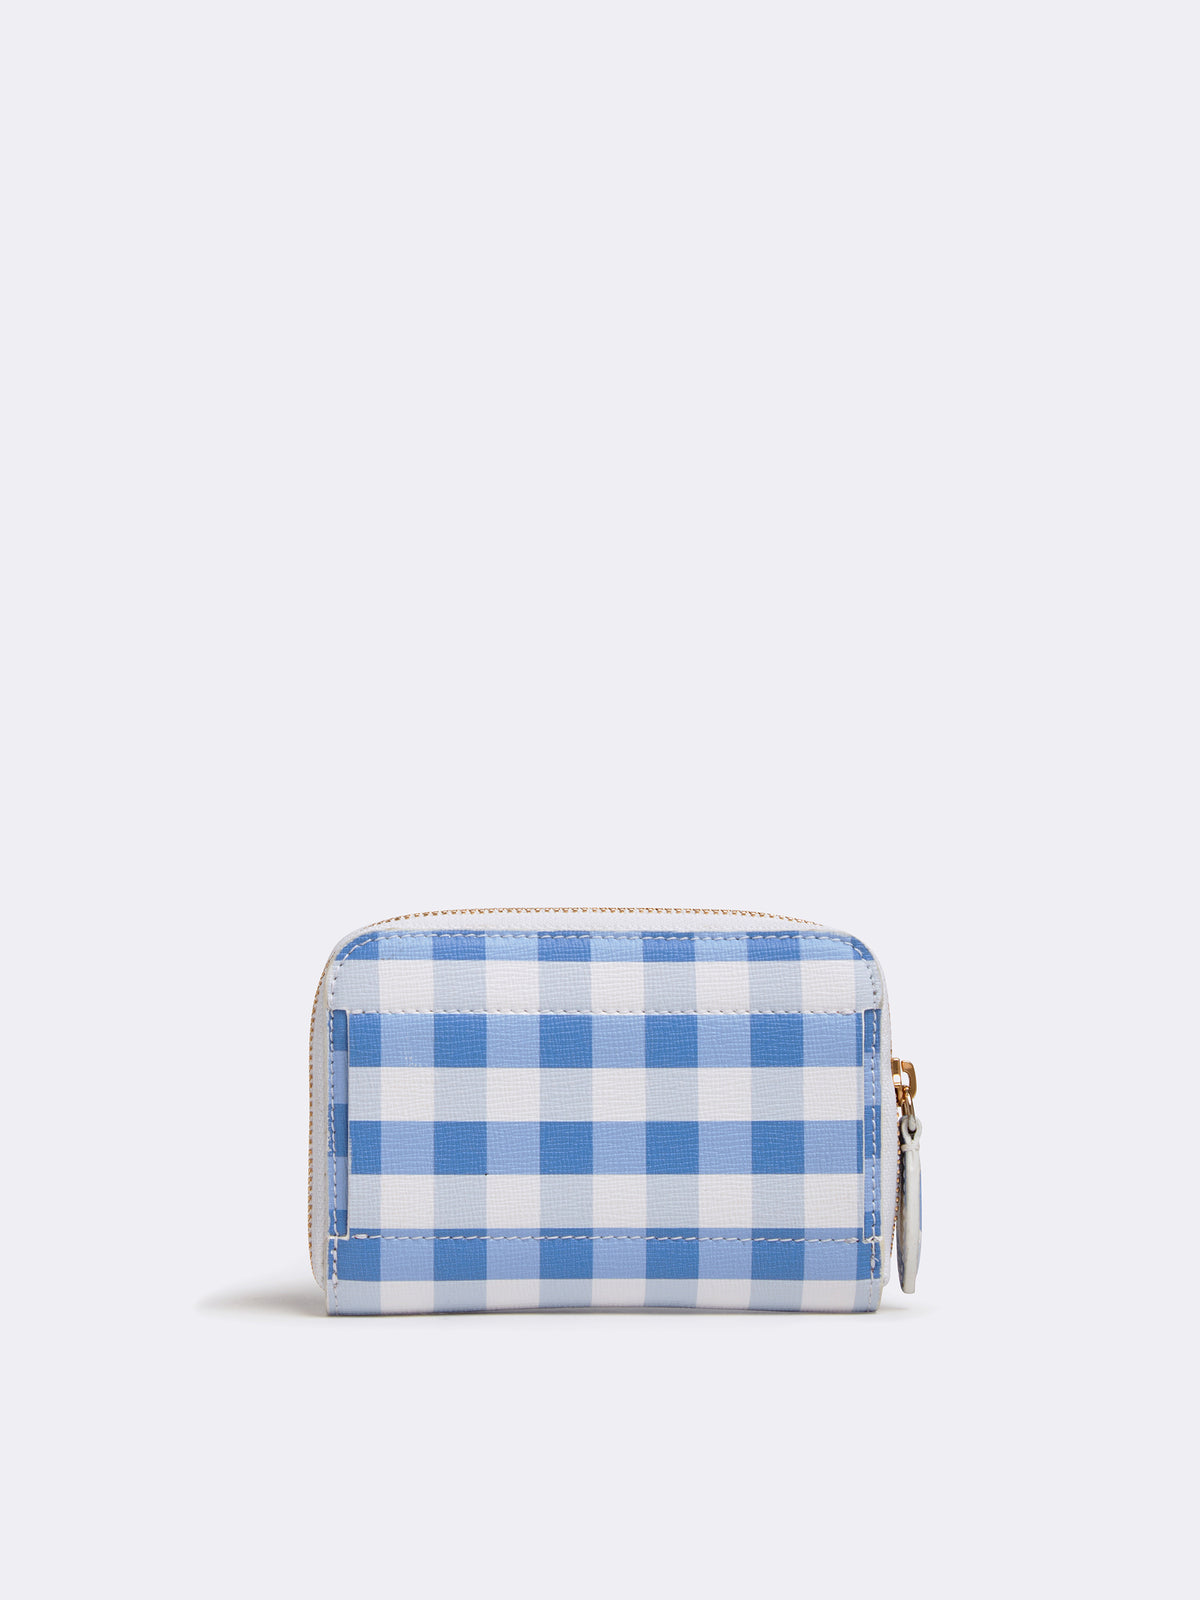 Mark Cross Zip Coin Pouch for Grace Belt Bag Mini Franzi Gingham Regatta Blue Back